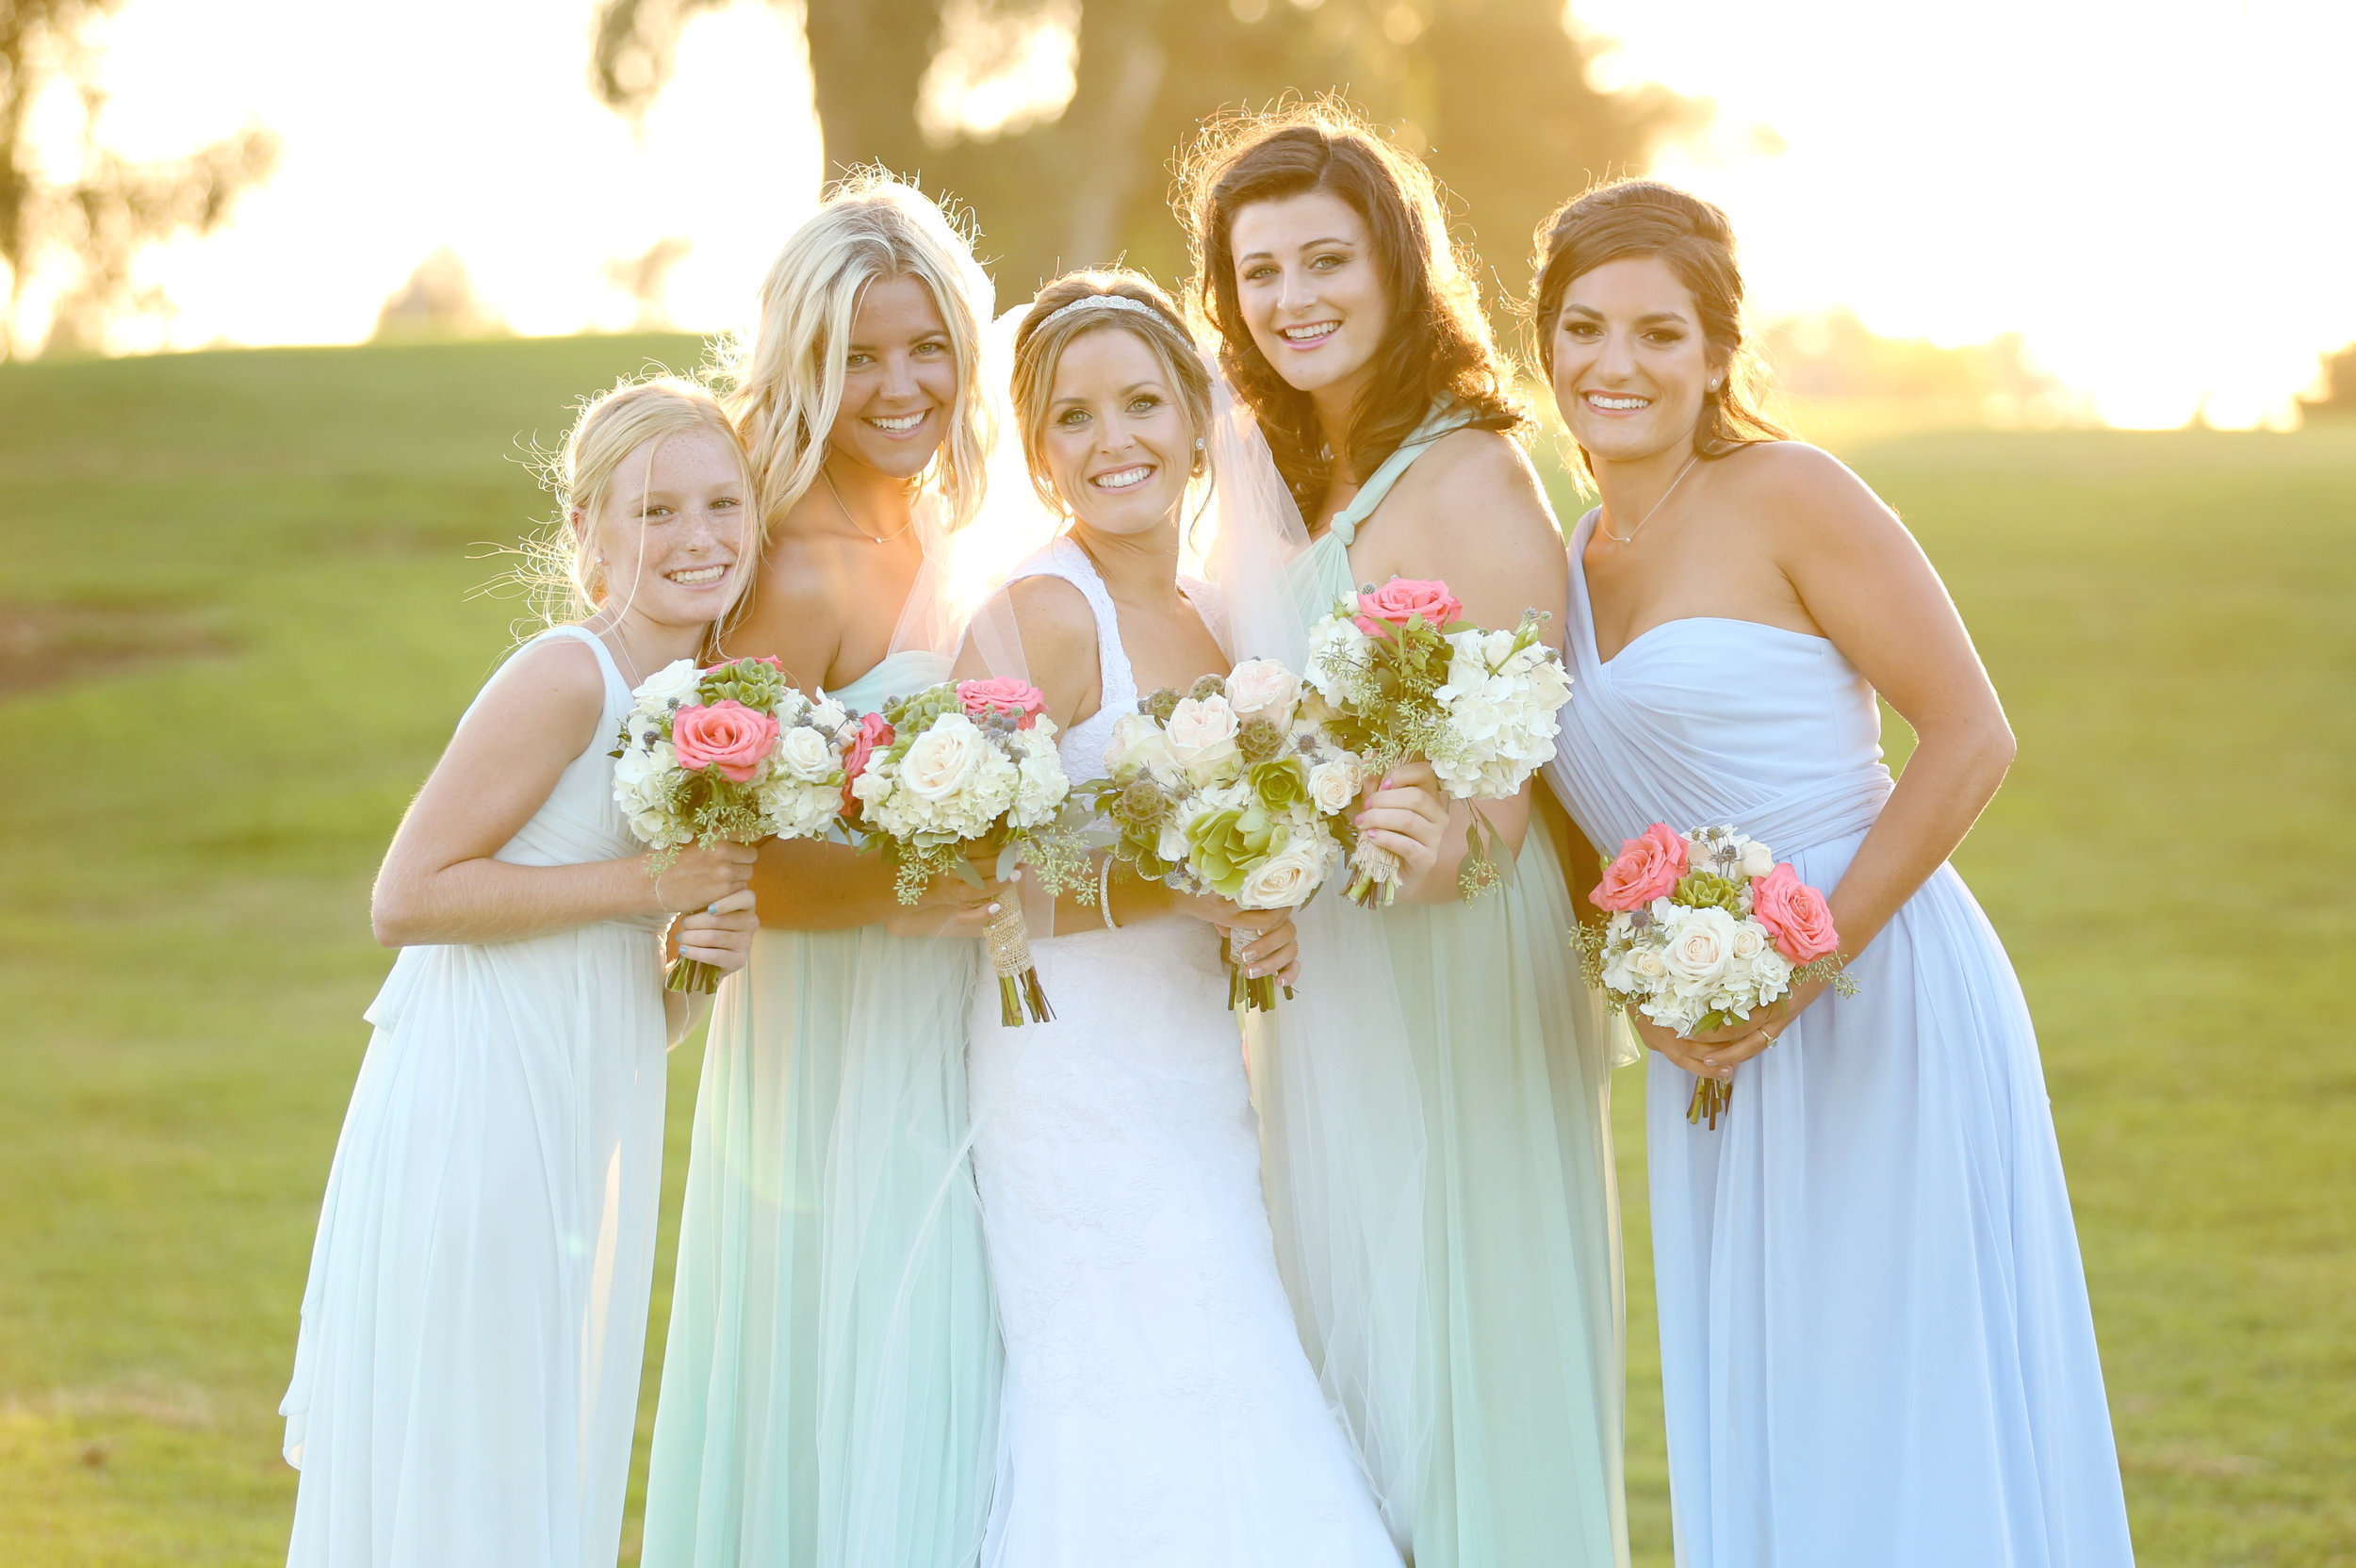 A portrait of a bride and her bridesmaids in Orange County.